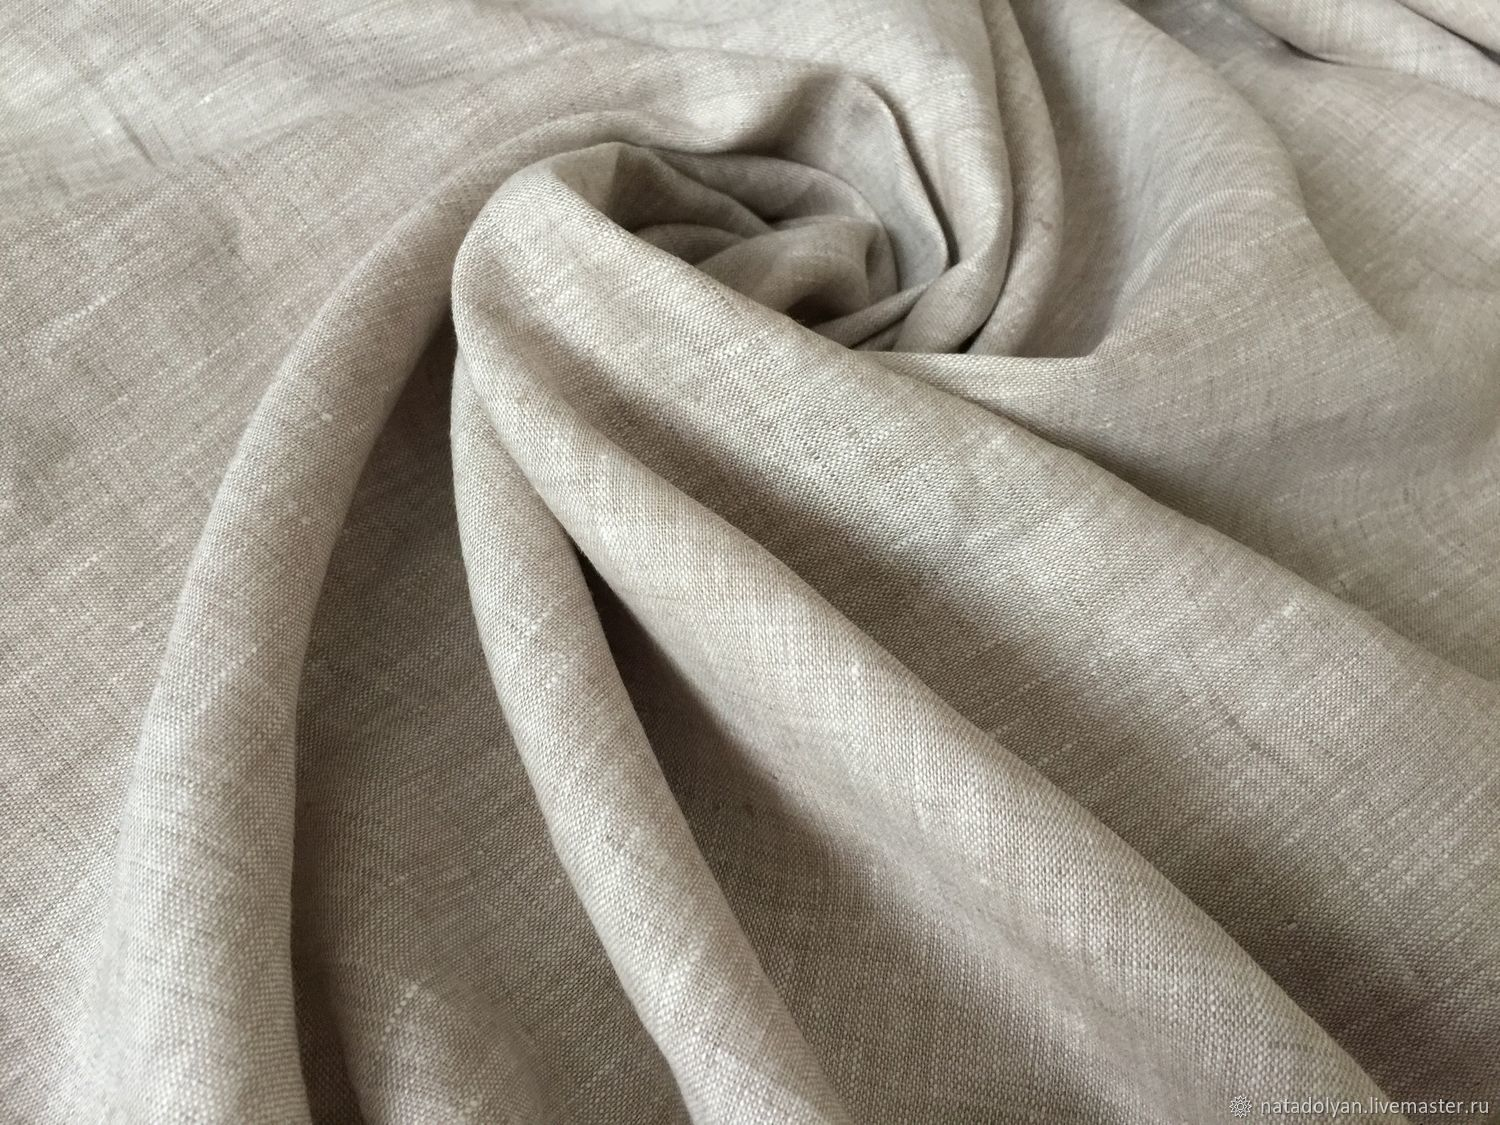 Flax 100% suiting ' Melange taupe', Fabric, Ivanovo,  Фото №1